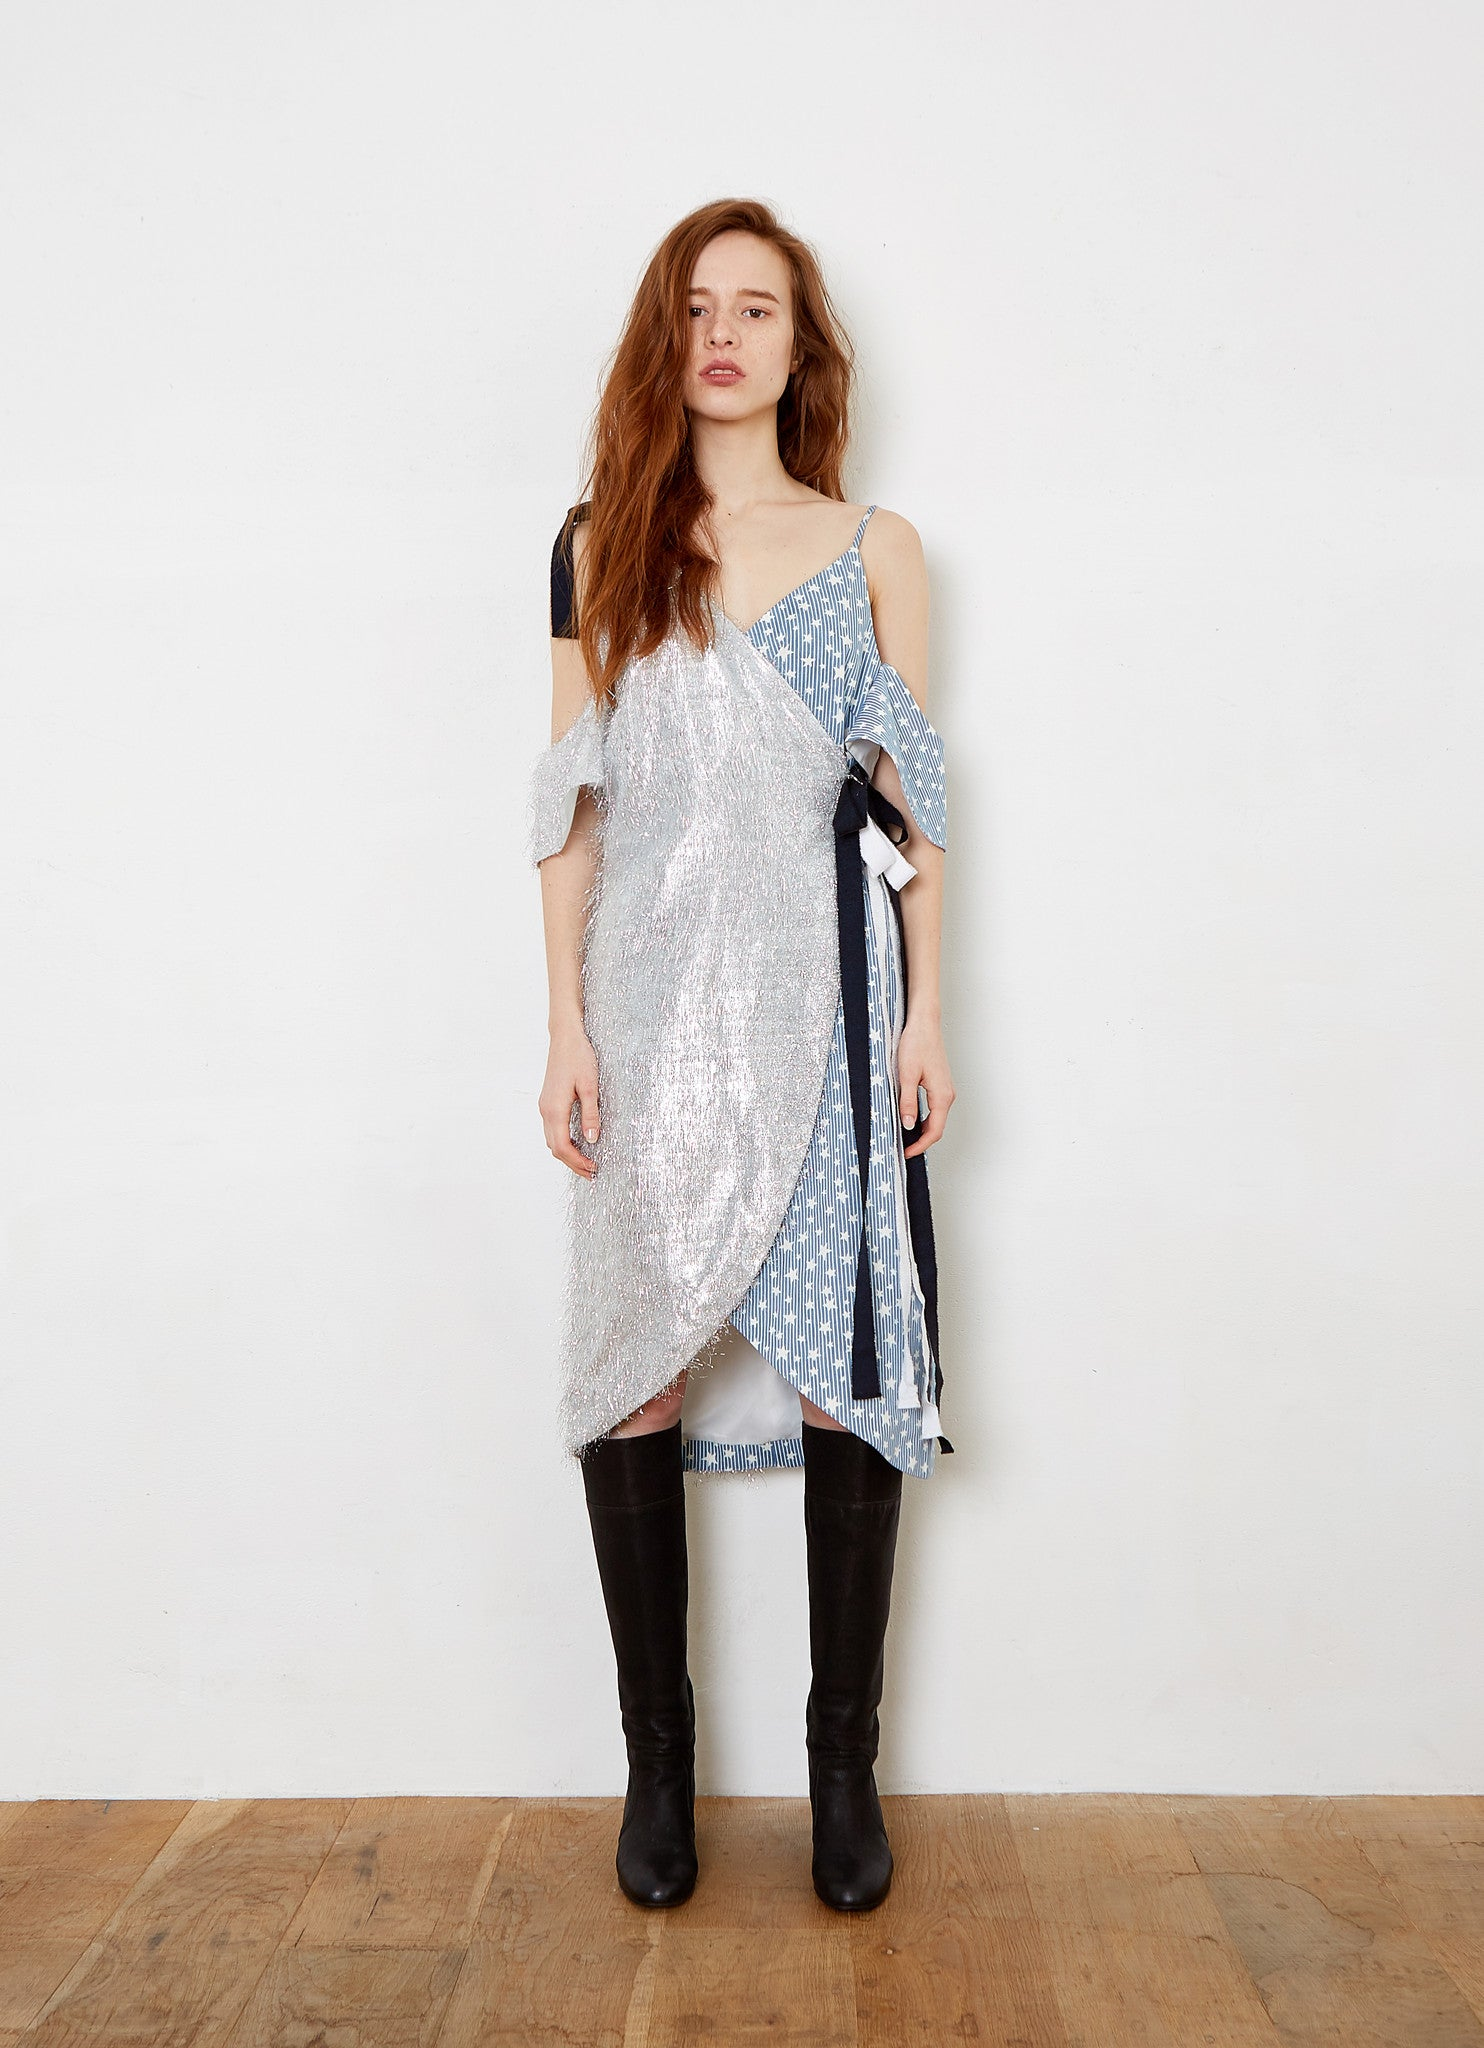 THEASHLYNN. AMANDA silver fringes & star denim dress. sequins.